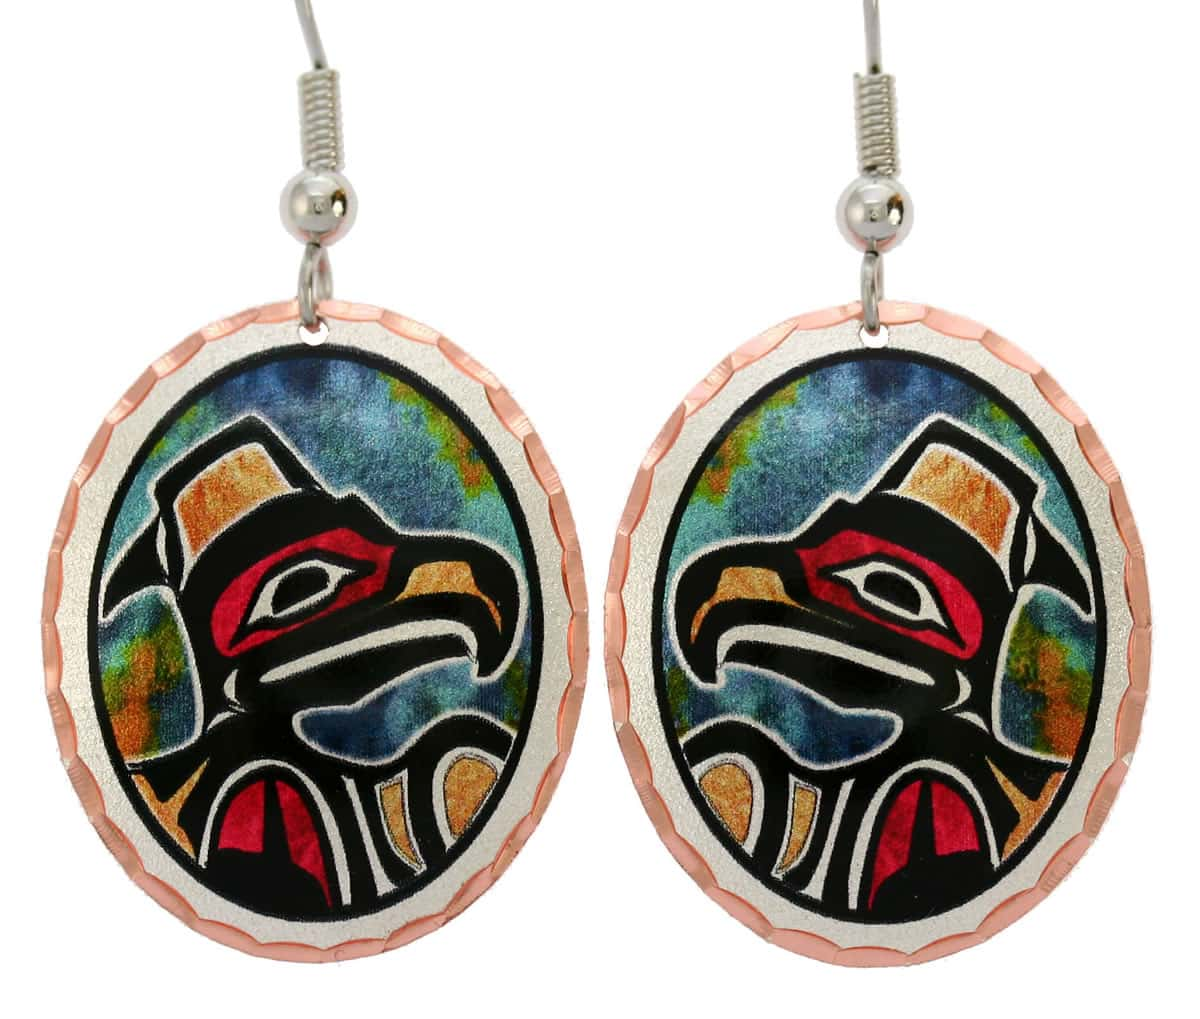 Northwest Native eagle earrings handmade from copper in bright colors will evoke delighted admiration